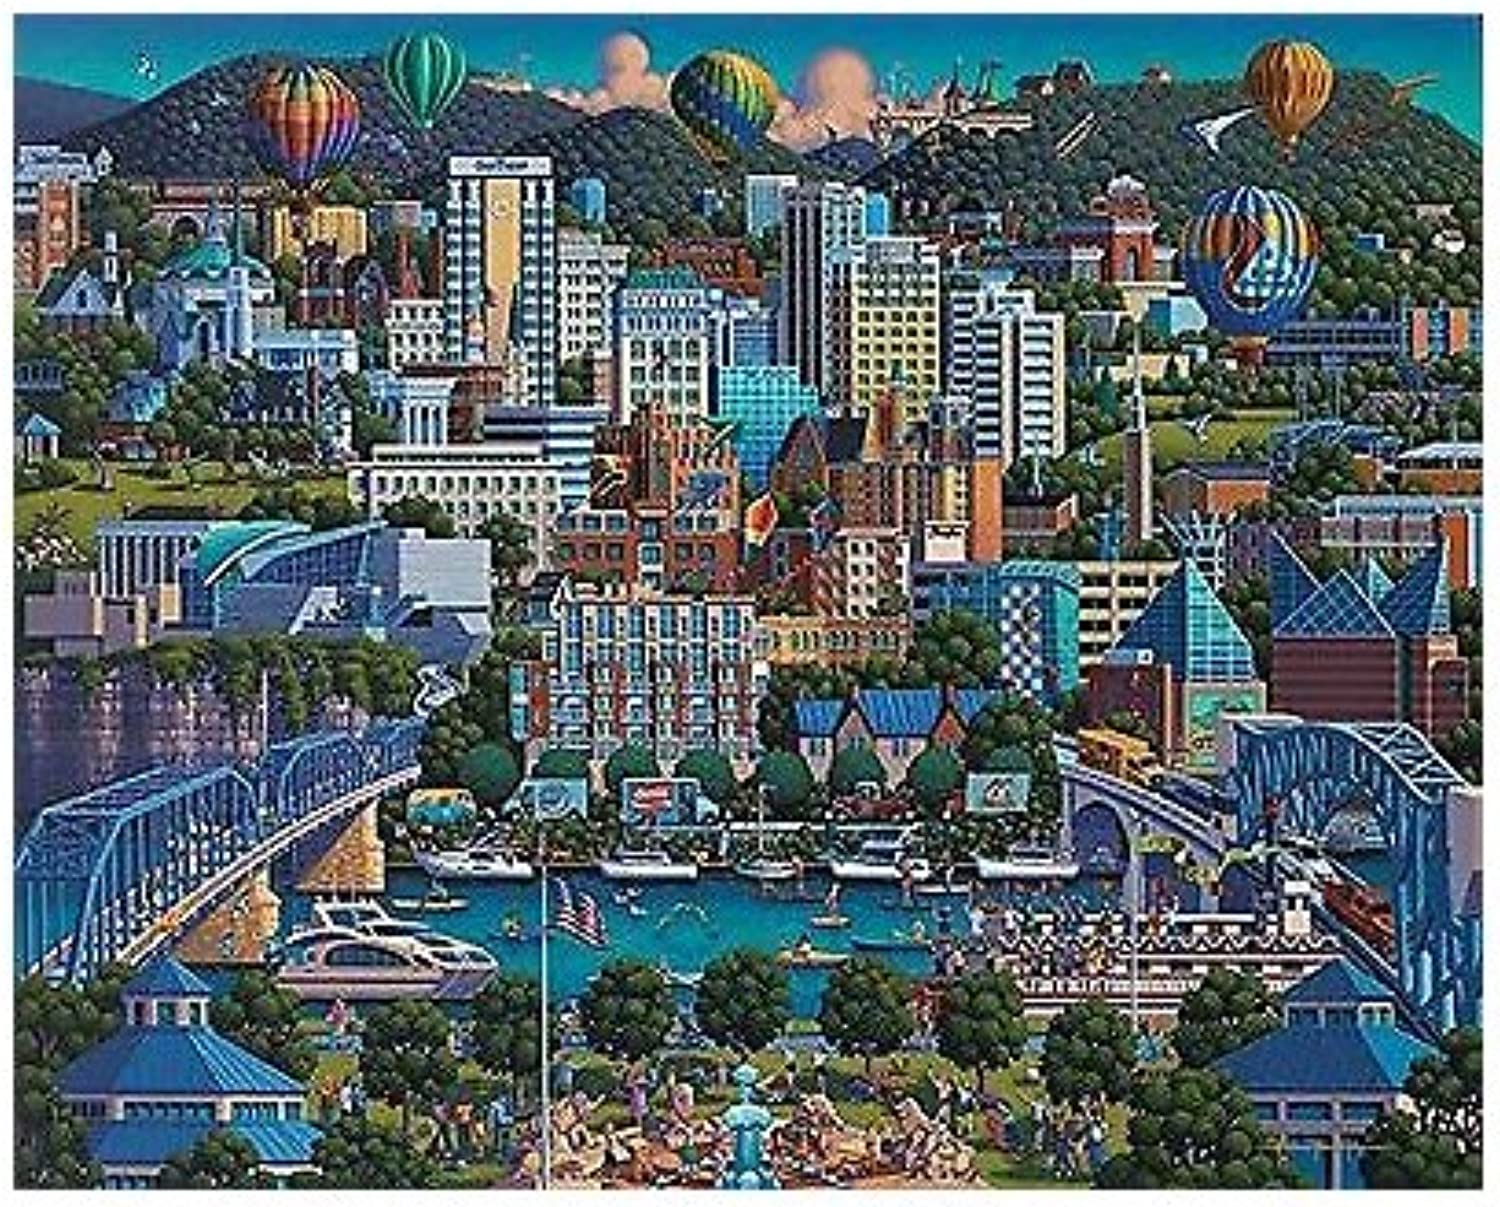 Dowdle Folk Art Chattanooga Puzzle, 500 Pieces by Dowdle Folk Art